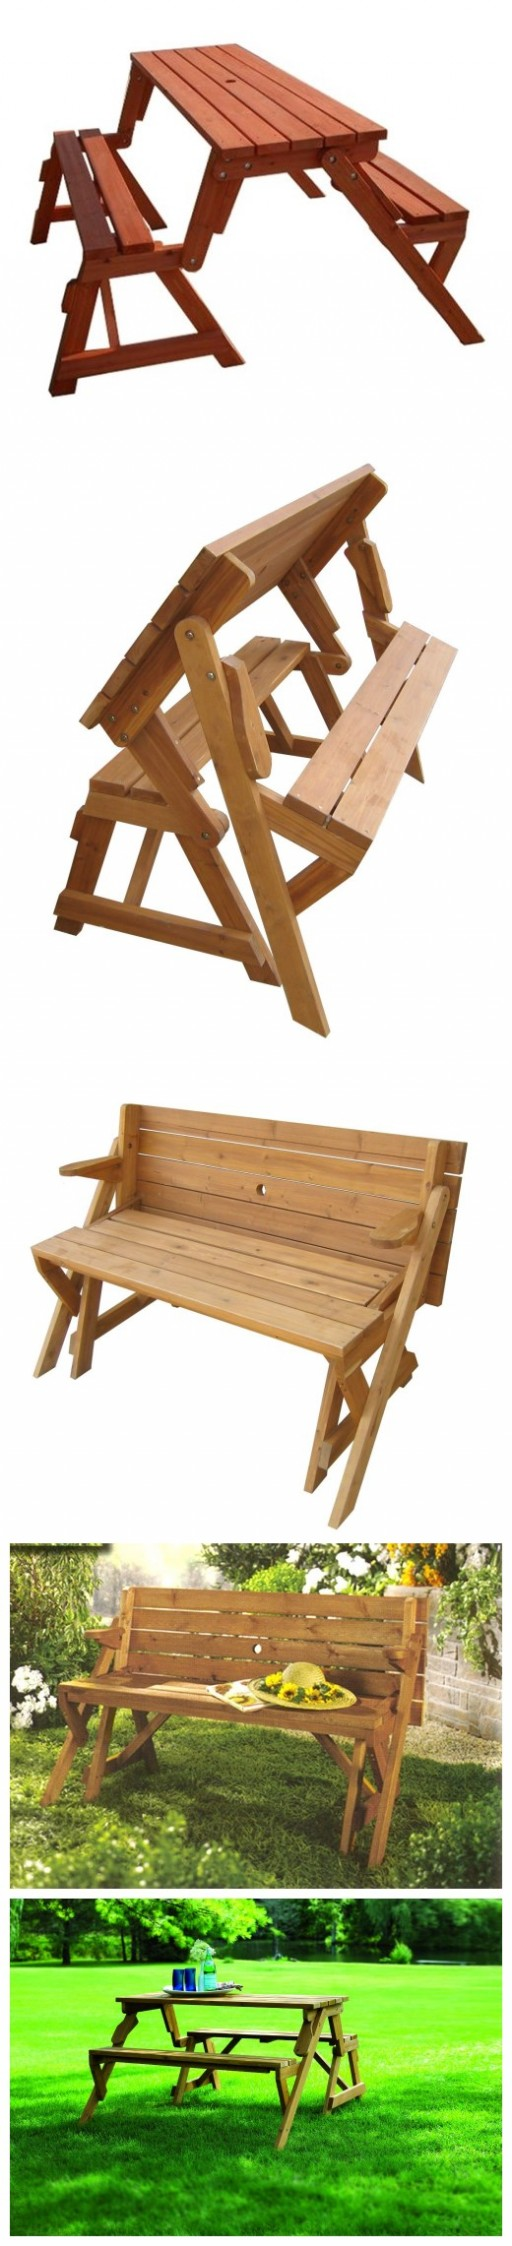 ... In 1 Convertible Folding Bench And Picnic Table | Apps Directories